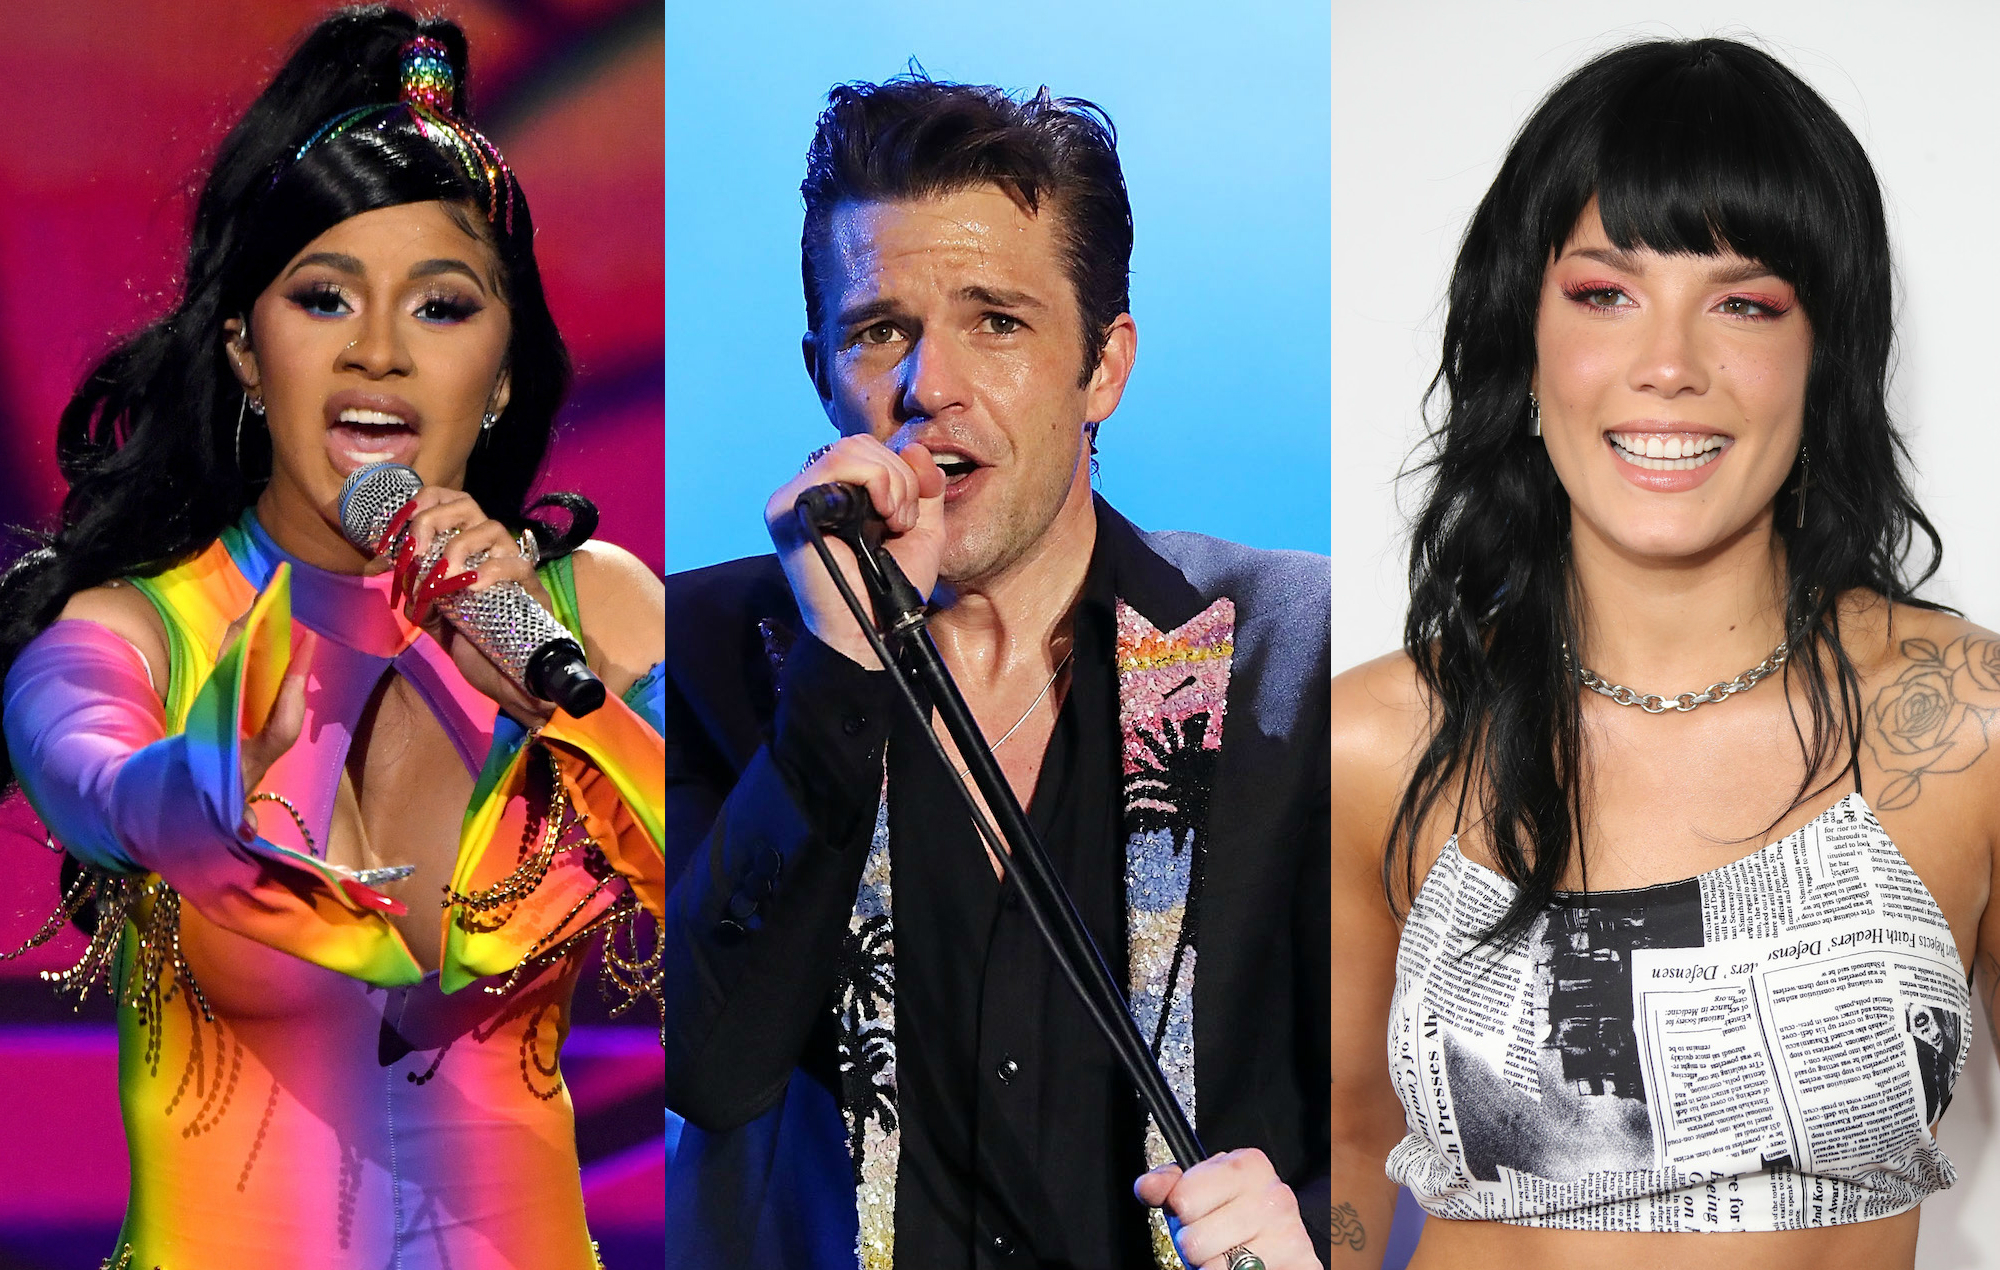 New Albums 2020.Cardi B The Killers And Halsey All The Best New Albums Of 2020